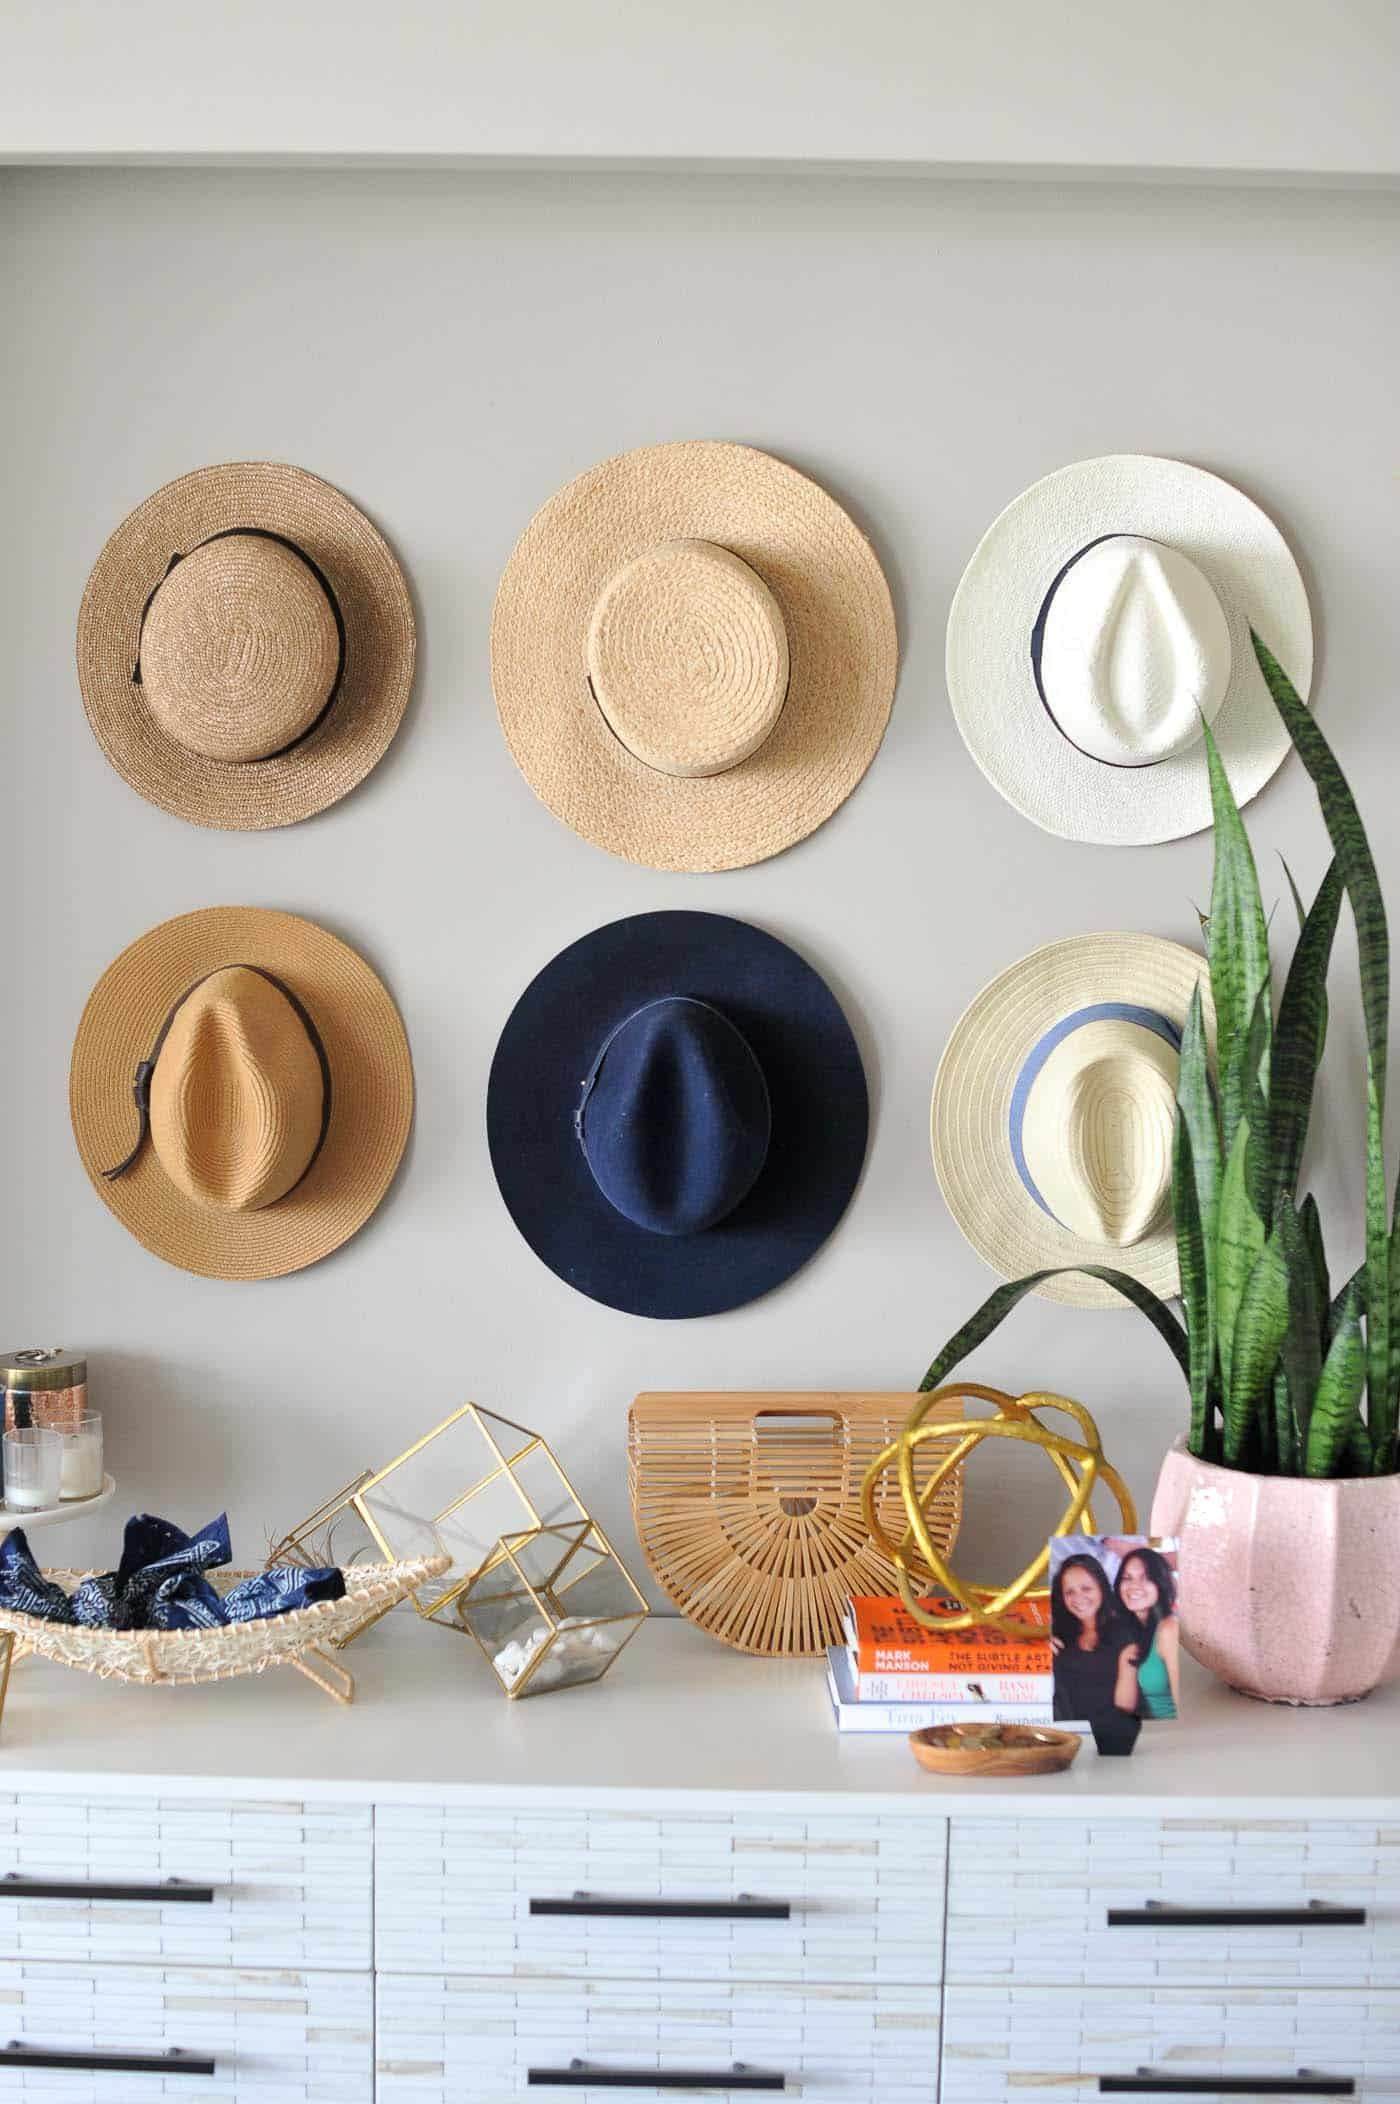 Hat wall ideas, how to style a buffet, affordable home decor ideas - My Style Vita @mystylevita